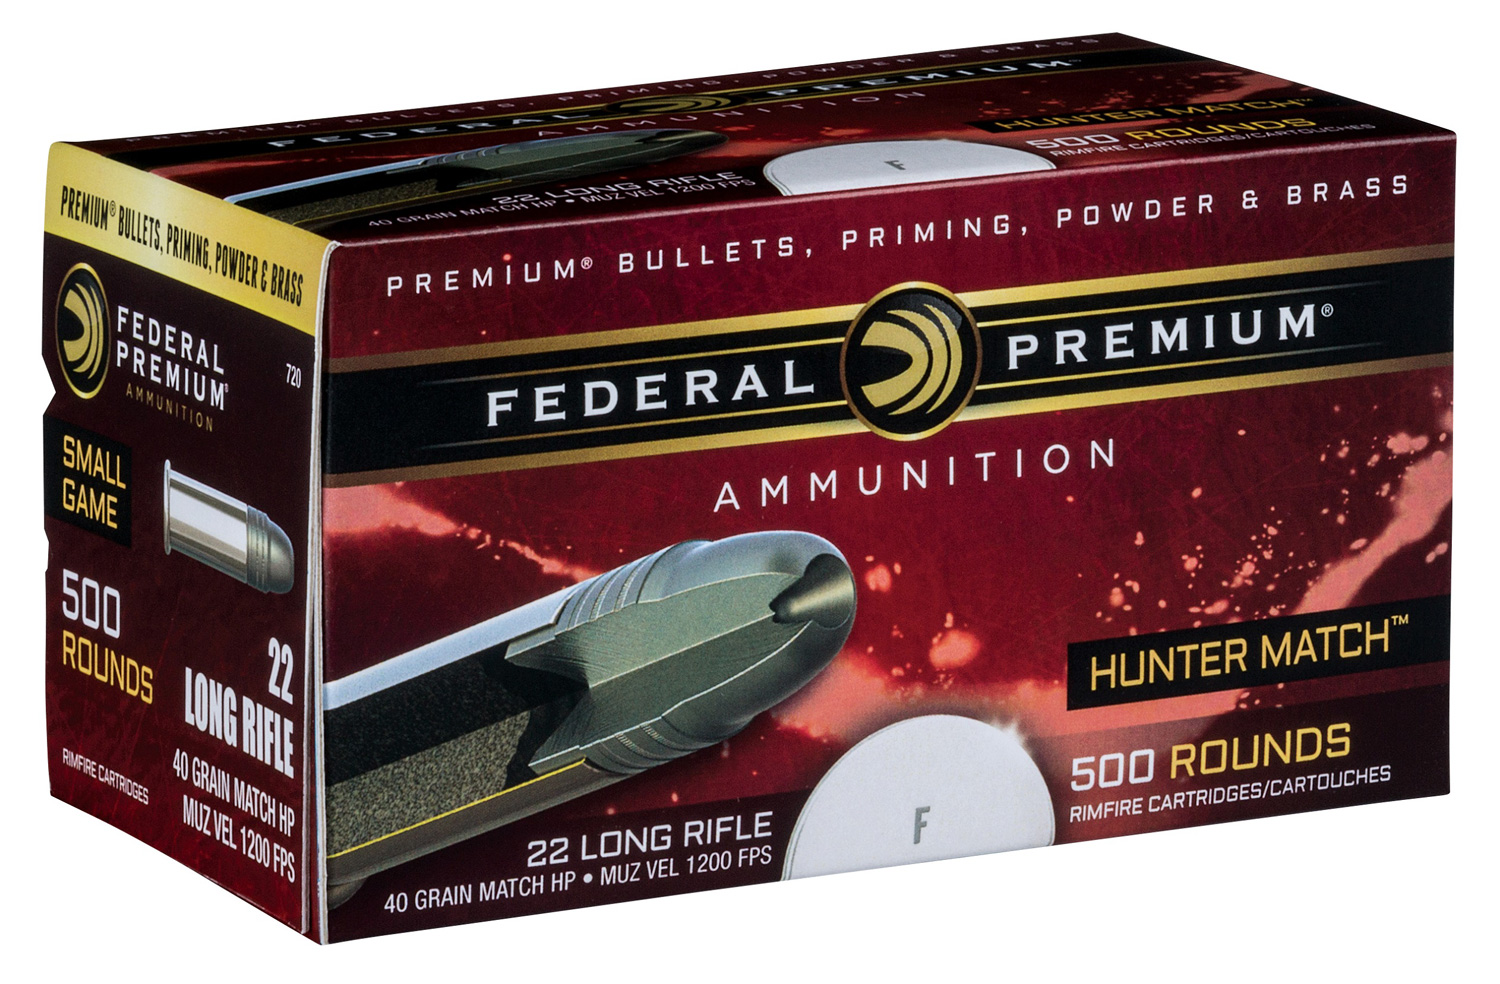 Hunter Match 22 Long Rifle ammunition box